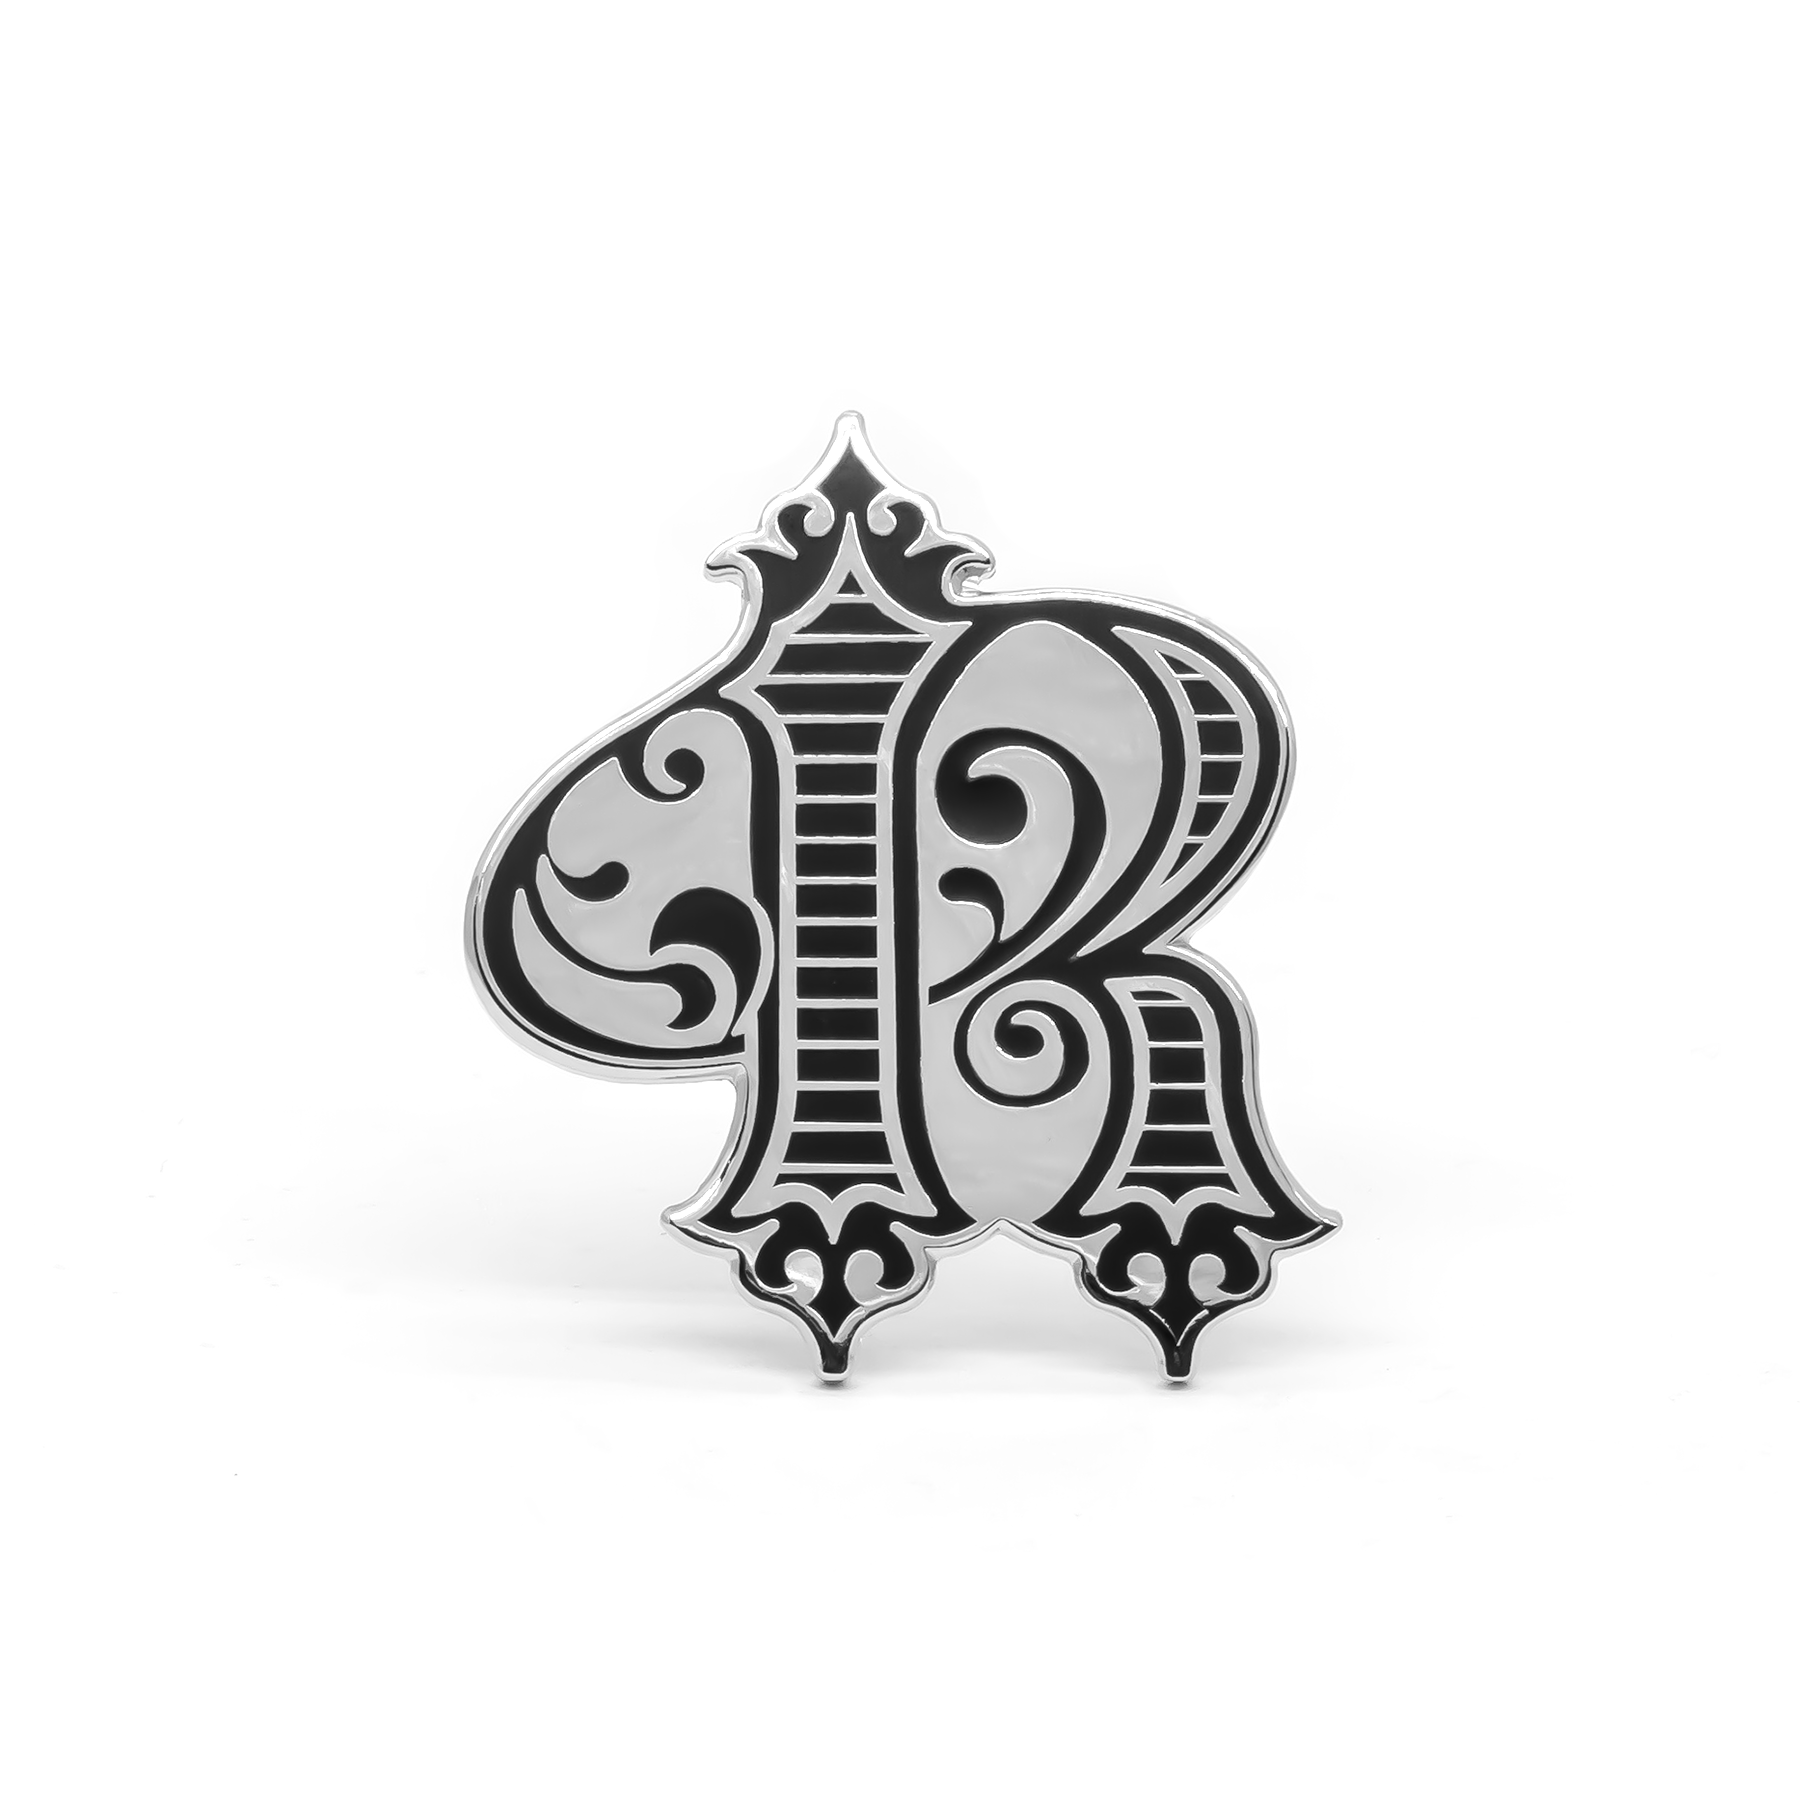 The Royale SF enamel pin